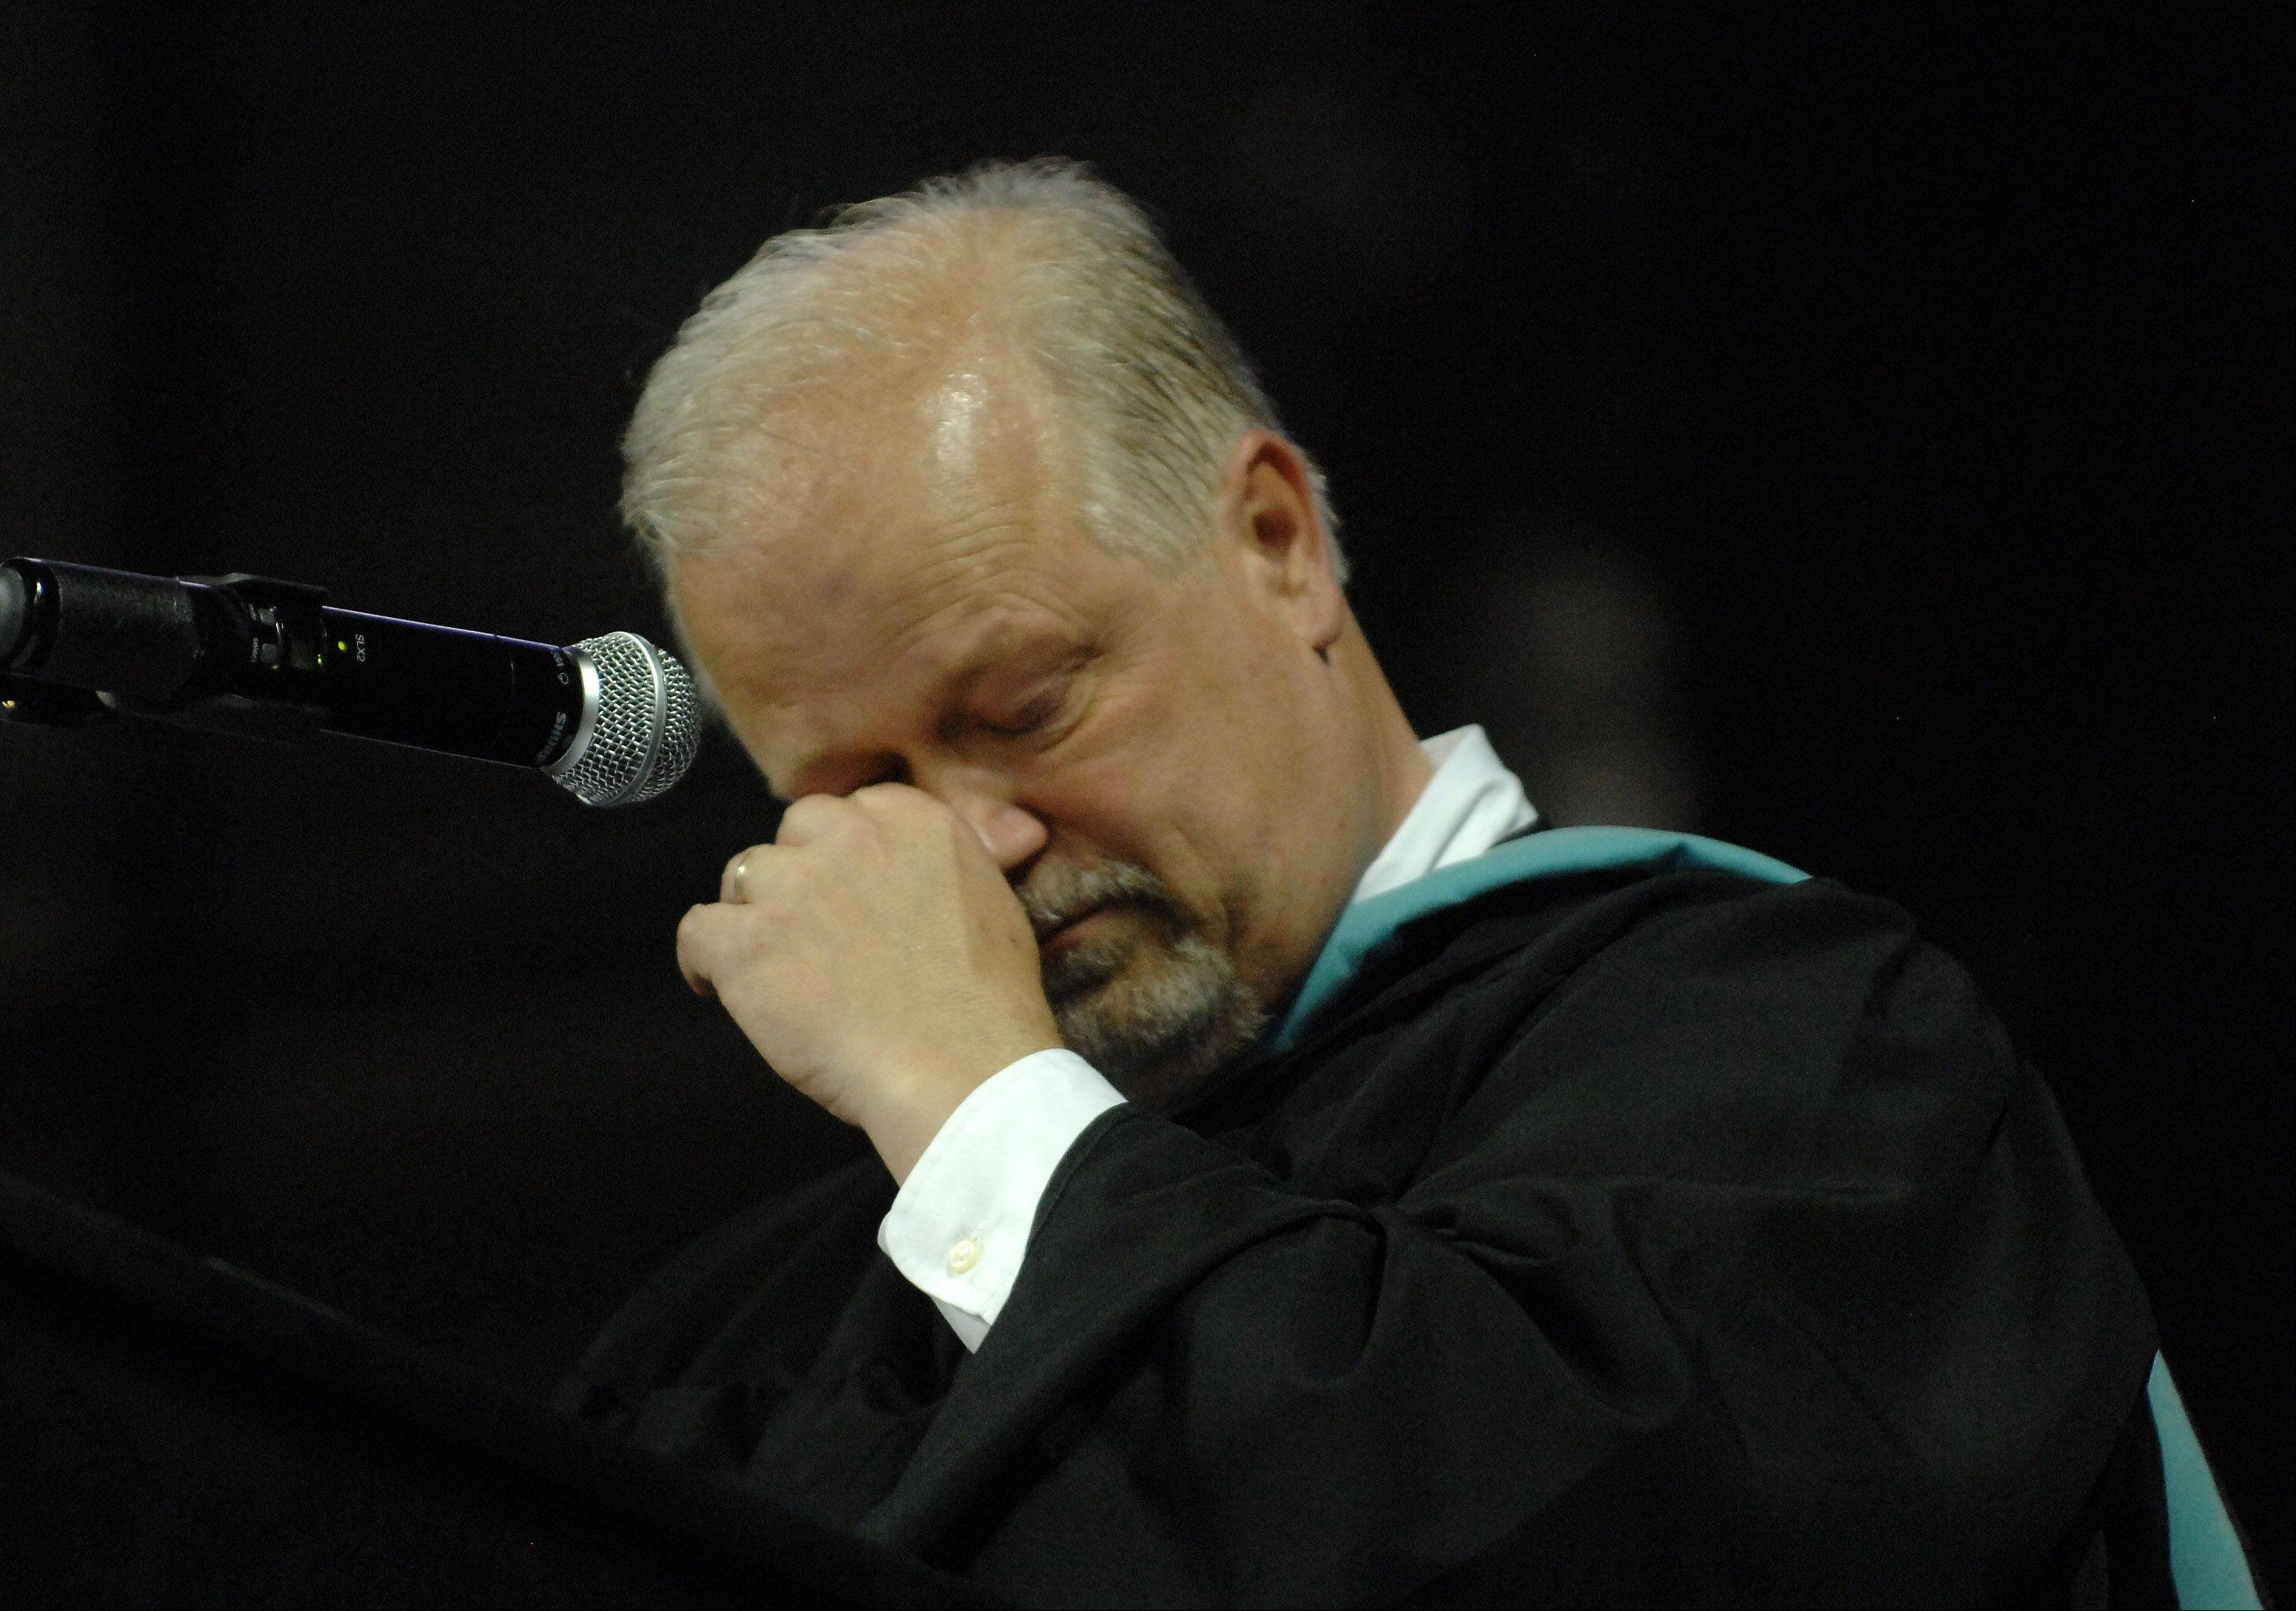 Chuck Bumbales gets choked up as he offers his last welcoming speech as principal of Hampshire High School during their graduation ceremony Saturday at the Sears Centre in Hoffman Estates. He'll be leaving at the end of the school year.